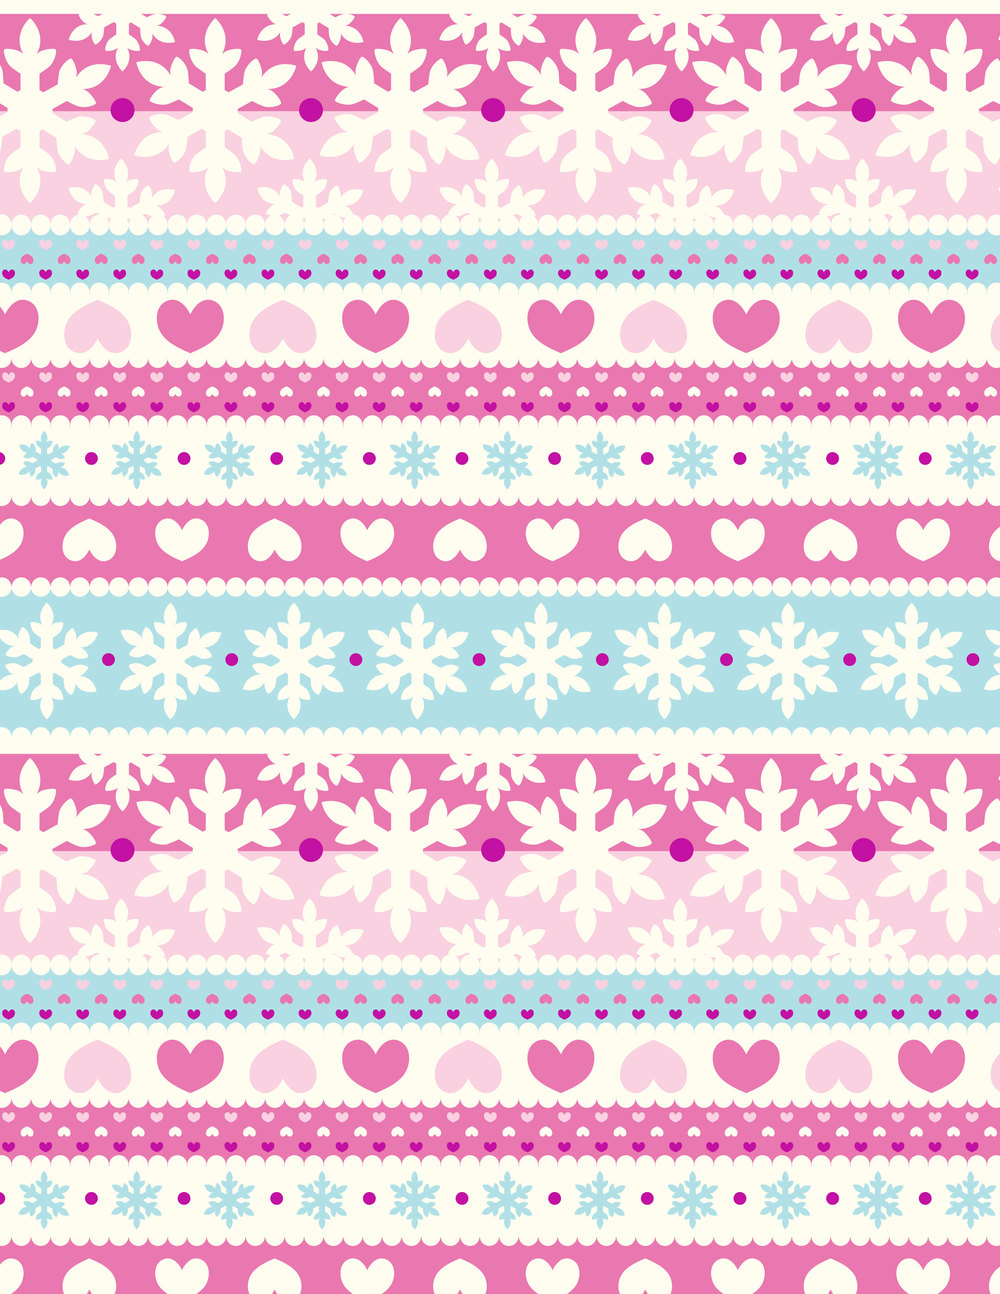 Snow Flakes and Hearts Print.